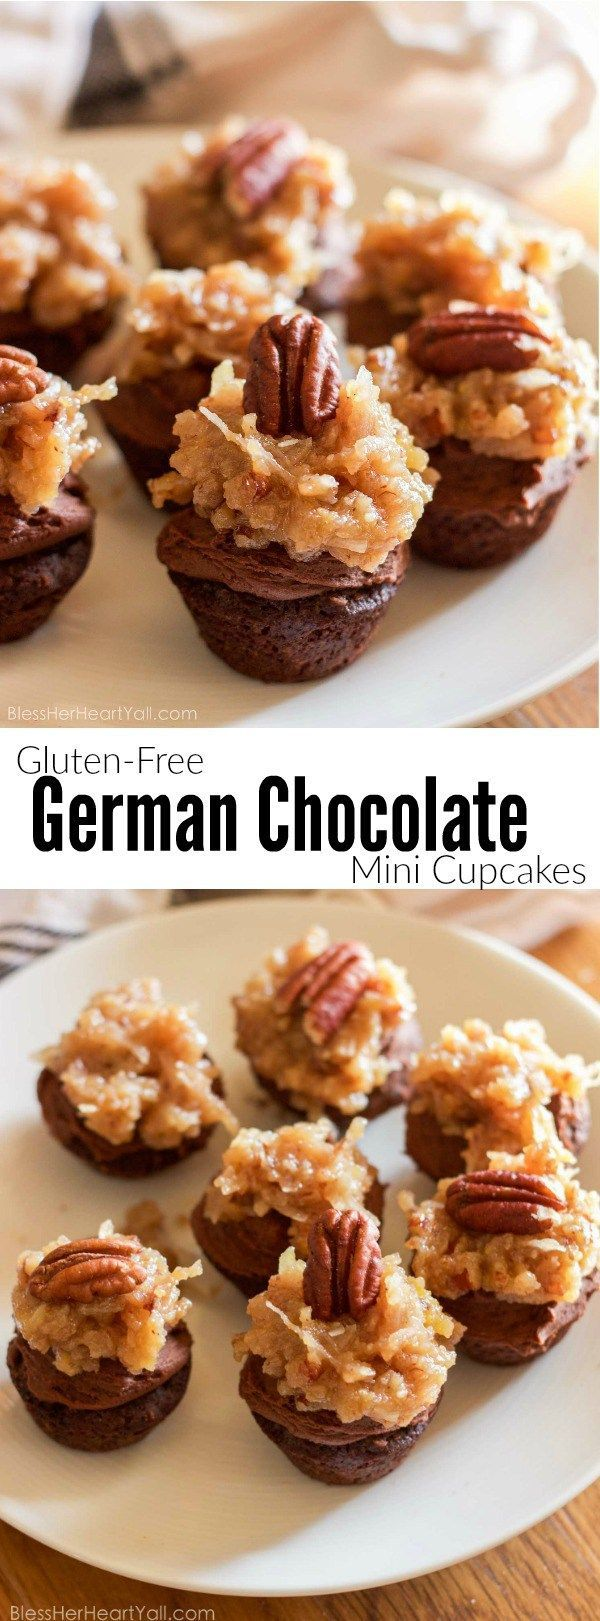 These fluffy and soft made-from-scratch gluten-free german chocolate mini cupcakes are a decadent little sweet treat, perfect for when you need a bite of something full of coconut, chocolate, and creaminess!